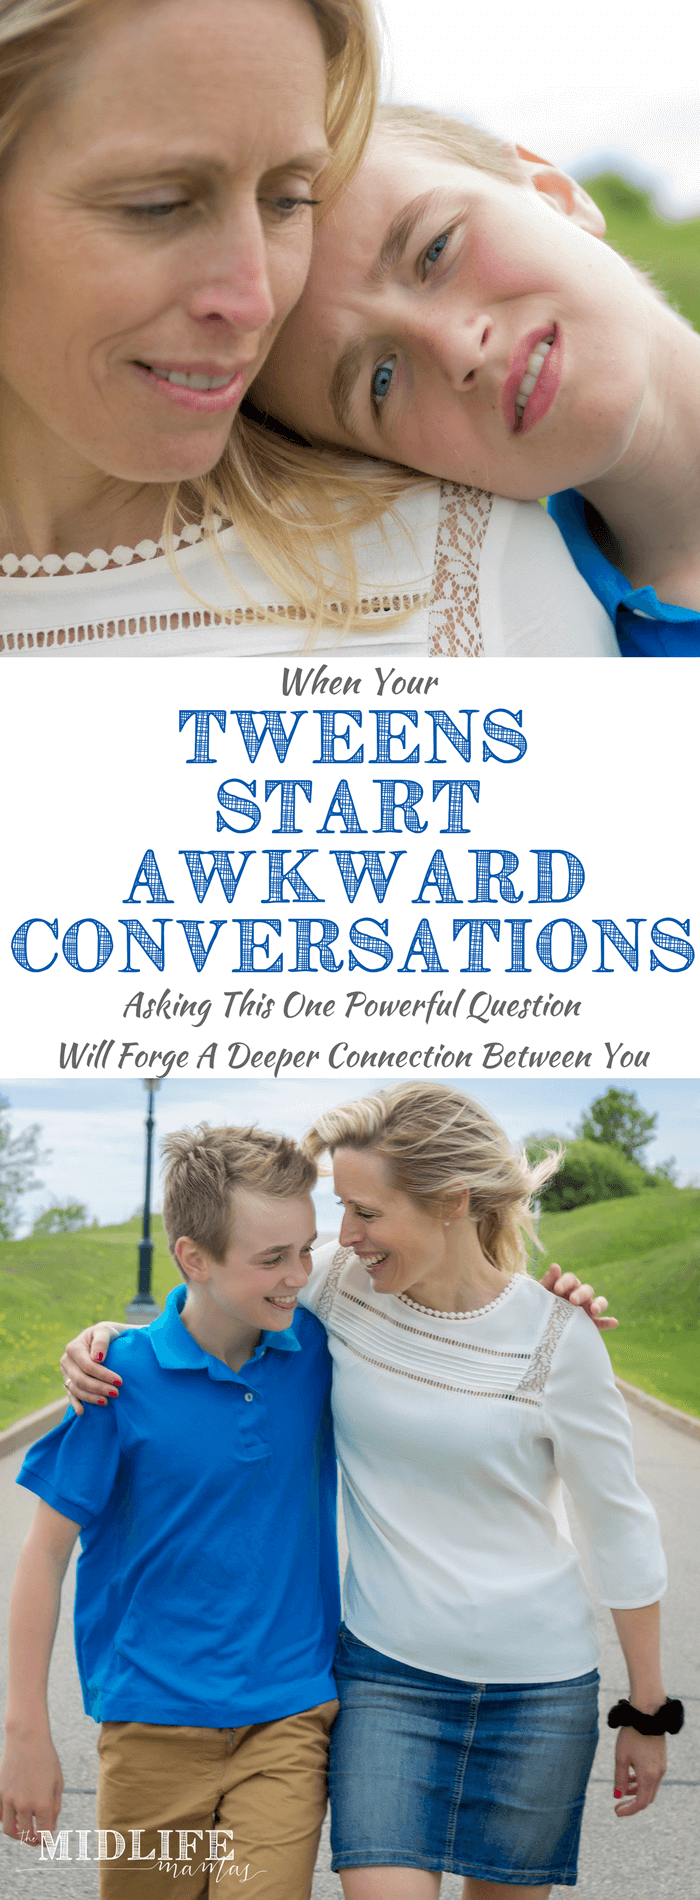 We all know that there will inevitably be awkward conversations with your tween or teen. I love this idea / tip because no matter how flustered or embarrassed I feel by my child's conversation starters, this works! What parents really want is a way to respond positively in the moment when we've been caught off guard instead of reacting negatively and damaging our relationship with our child. Here's the only phrase you'll ever need to know! #positiveresponse #tweens #teenagers #parentingtweens #parentingteens #parenting www.themidlifemamas.com